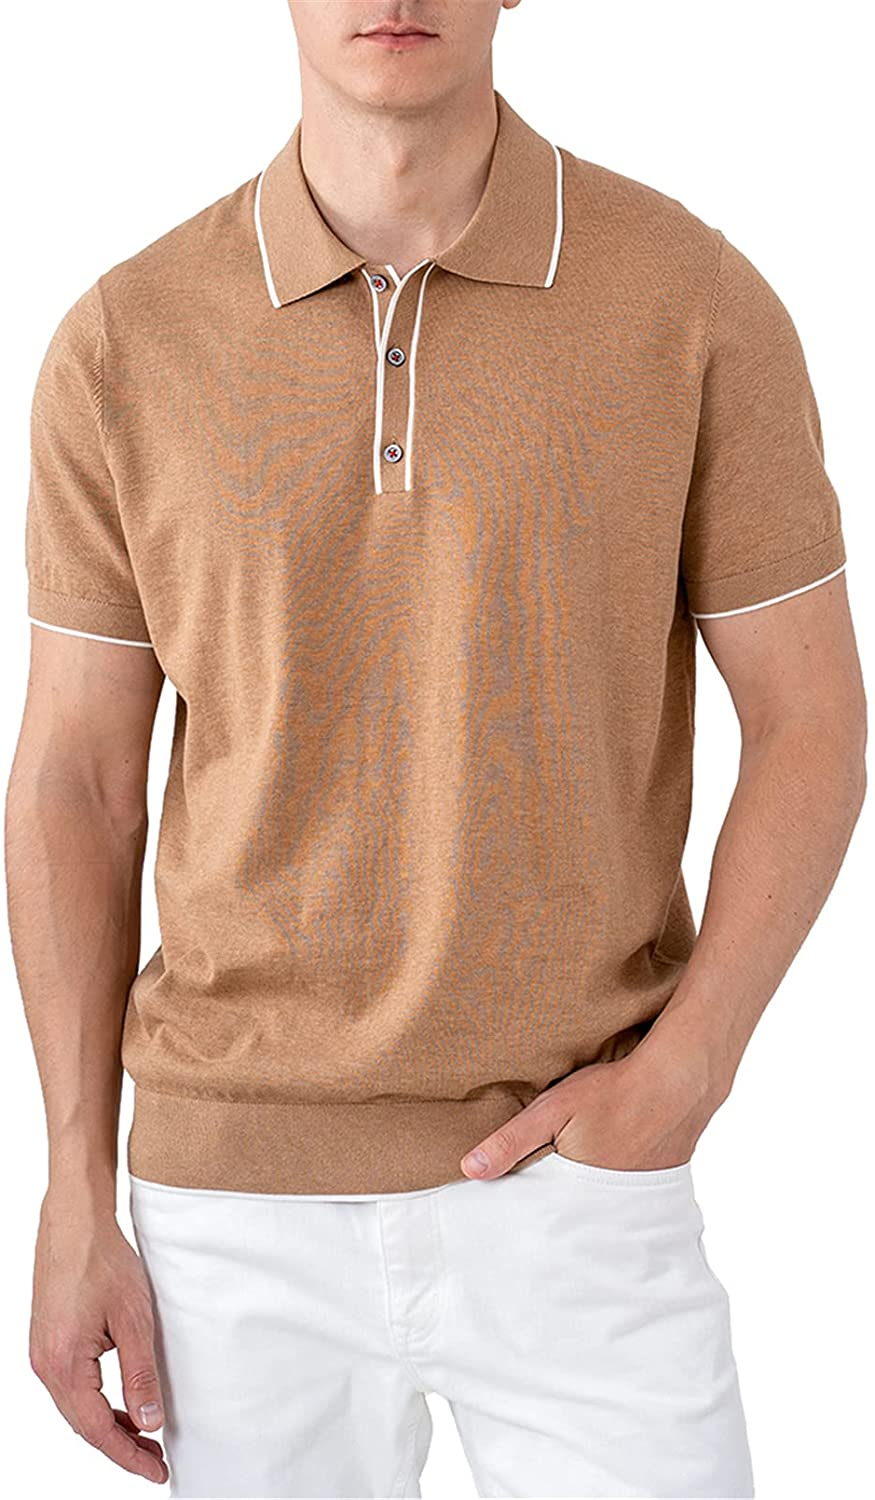 ALTAIREGA Mens-Polo-Shirt Max 43% OFF Spasm price Short-Sleeve-Golf-Tops Knit-Pullover -